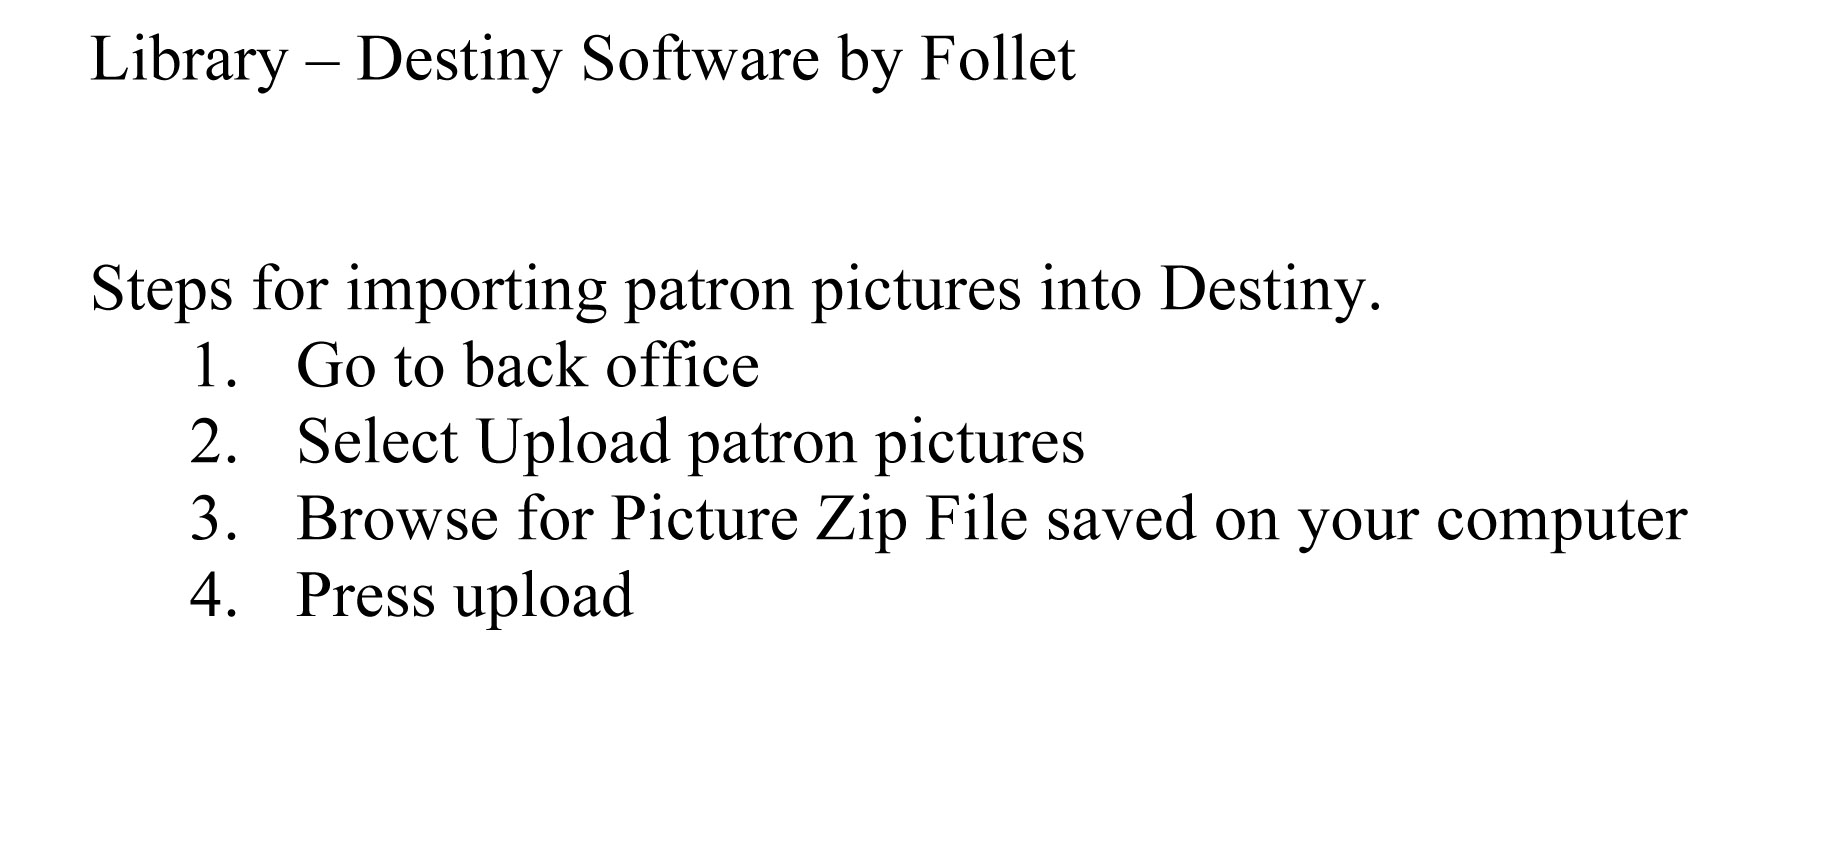 Import Pictures into Destiny by Follet